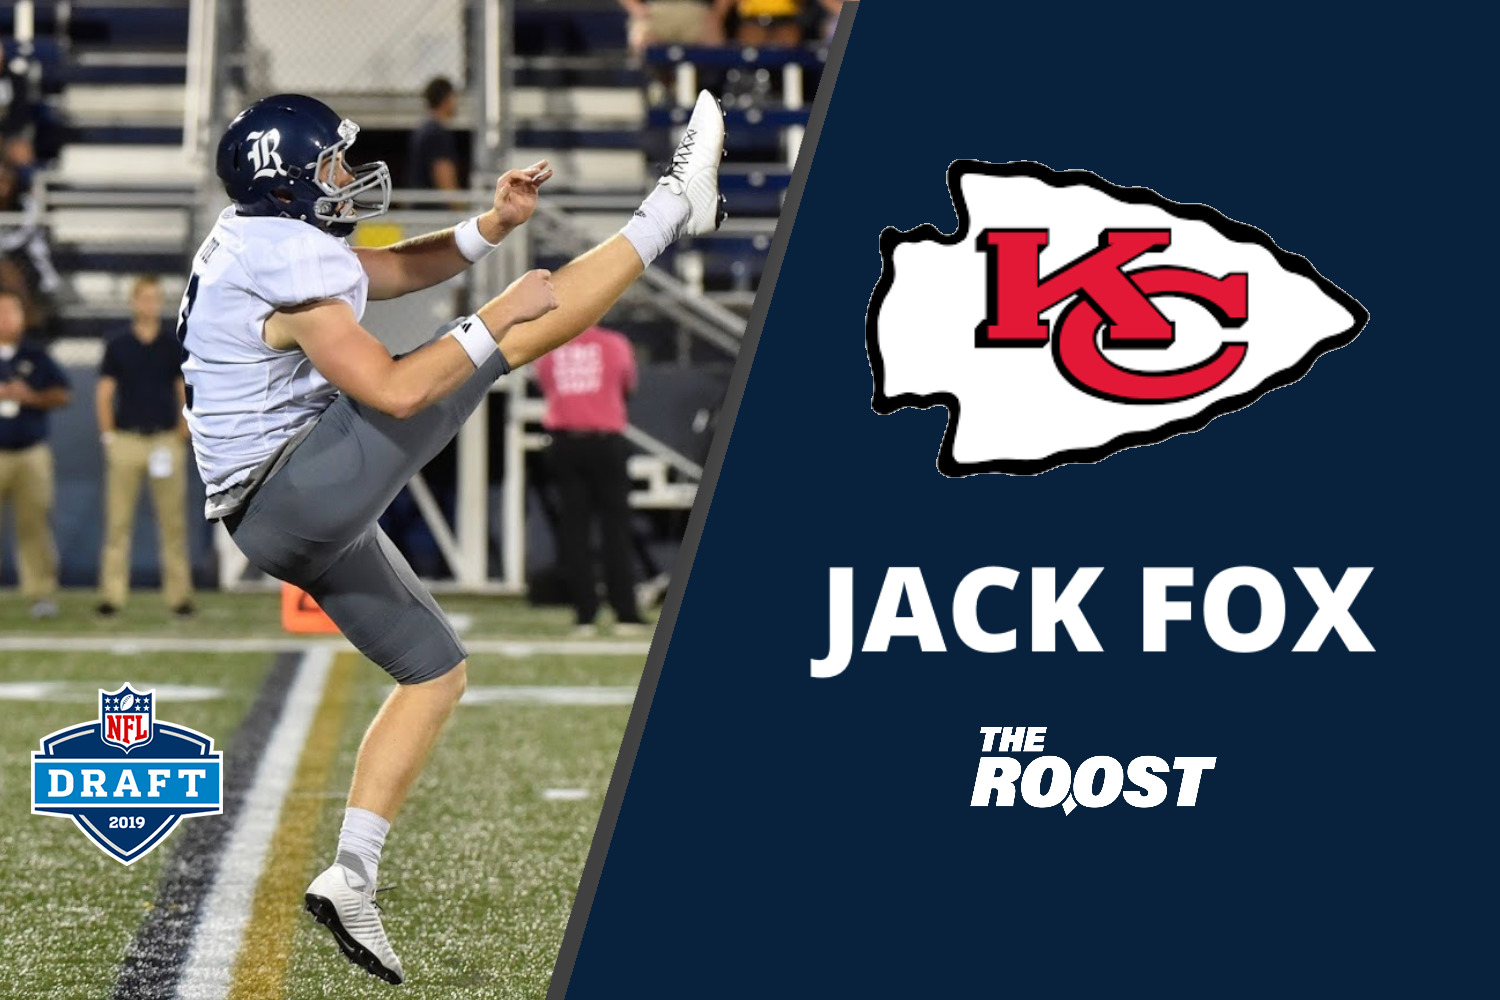 Jack Fox, NFL Draft, Rice Football